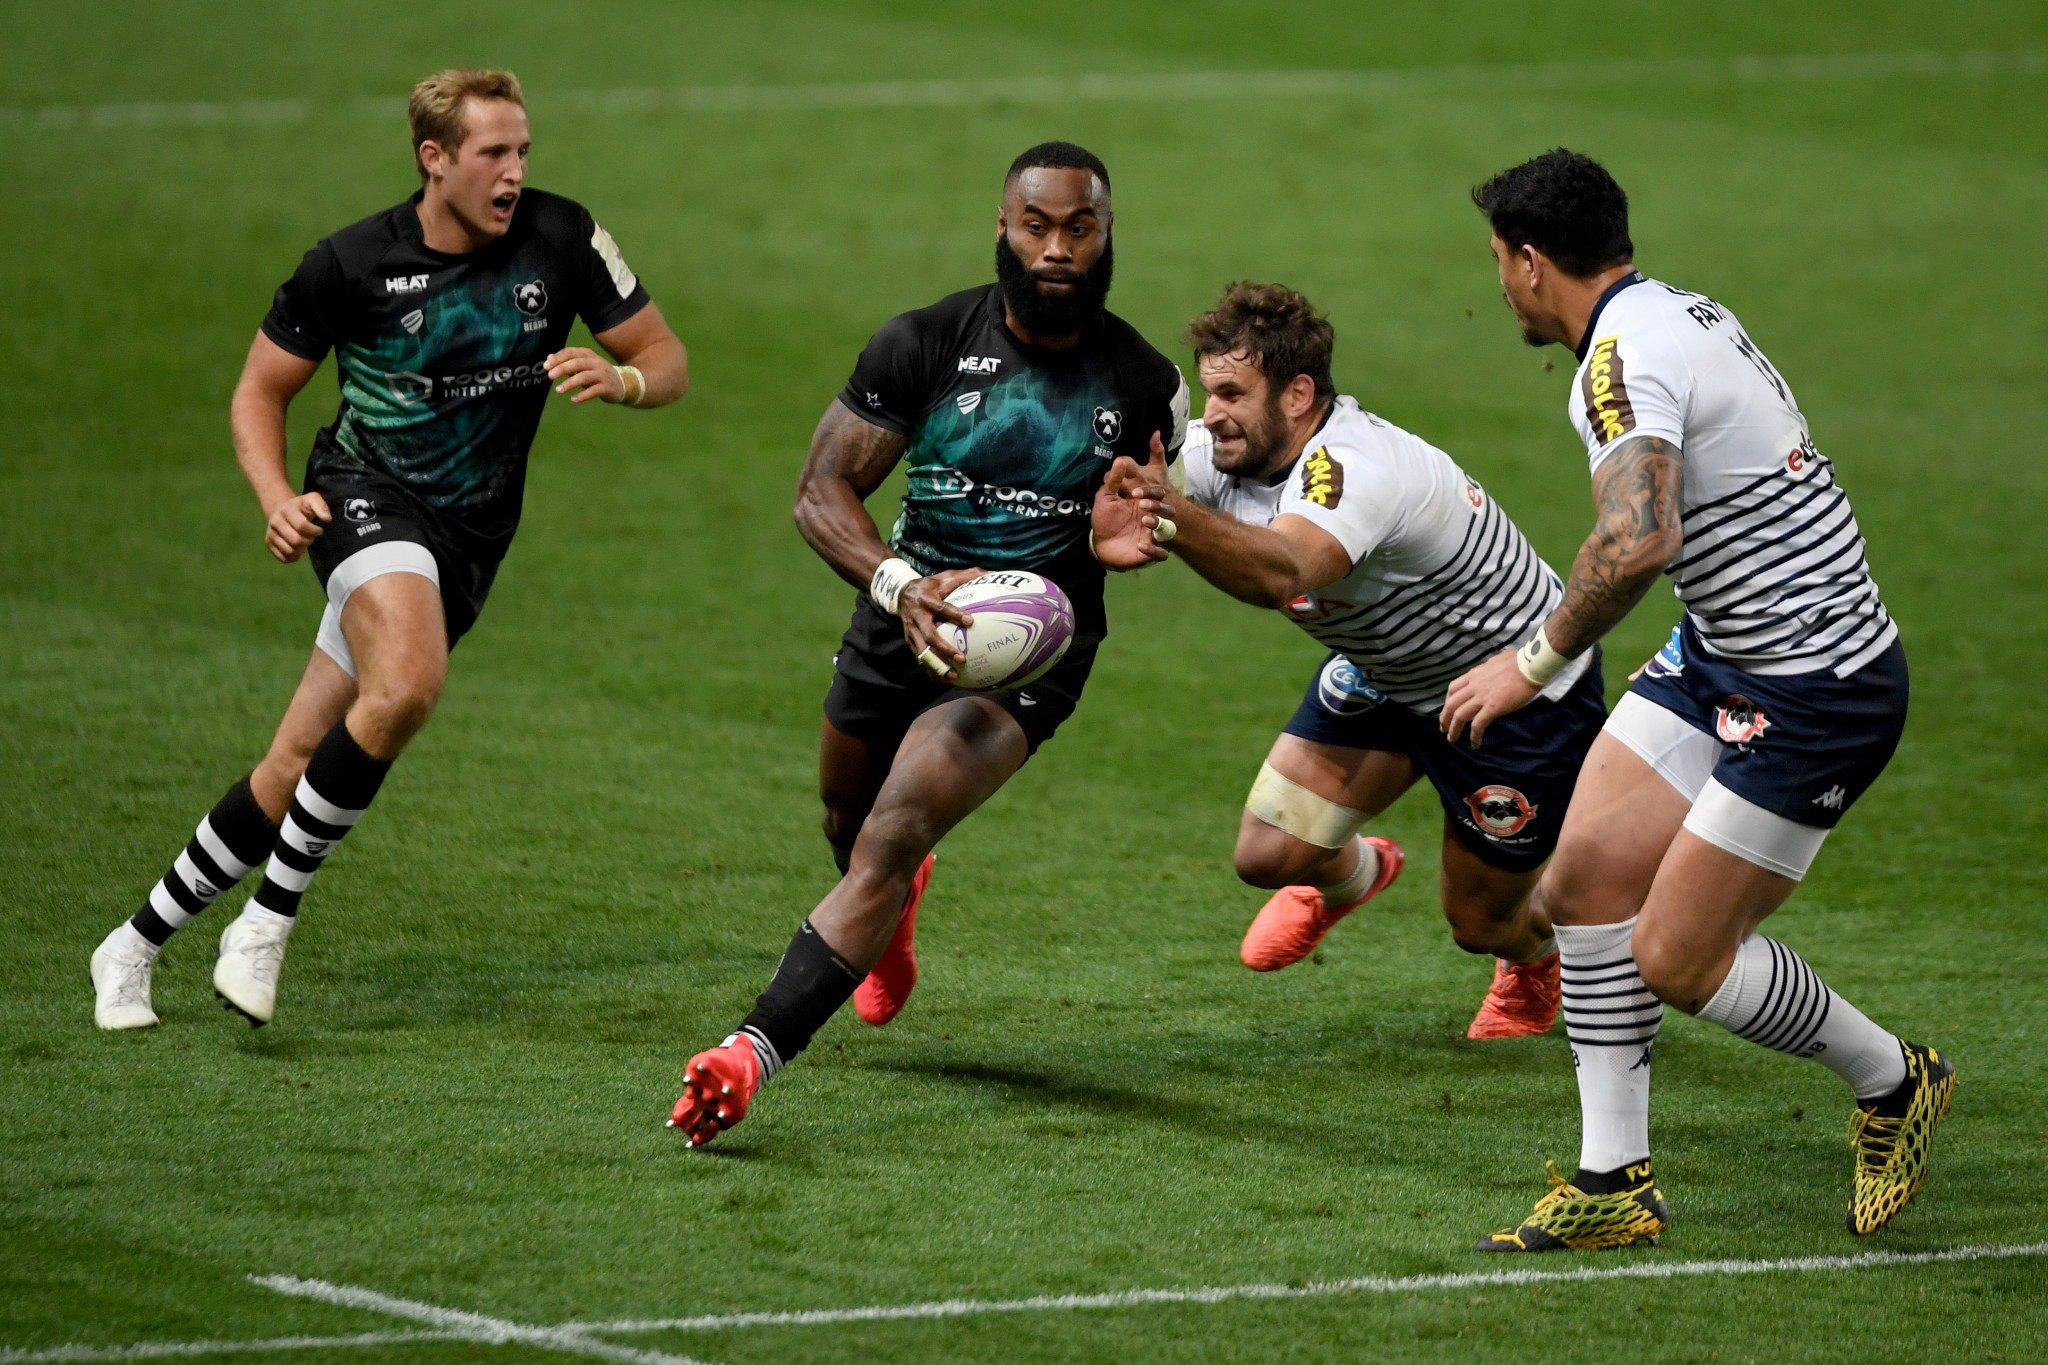 Bristol Bears star Semi Radradra has proven to be hard to stop in the Gallagher Premiership ©Getty Images